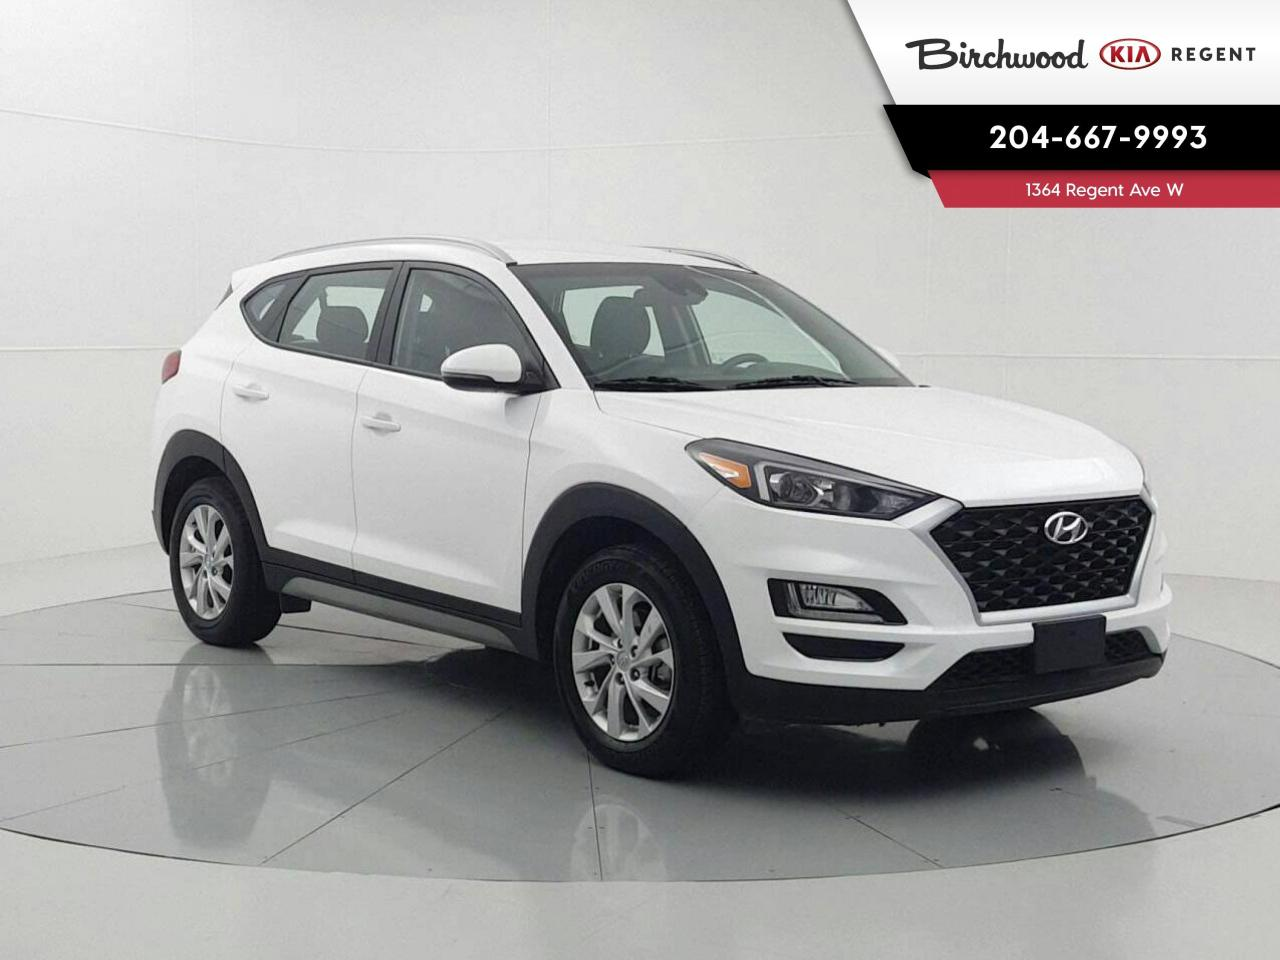 used 2019 hyundai tucson preferred awd heated steering wheel rearview camera for sale in winnipeg, manitoba carpages.ca